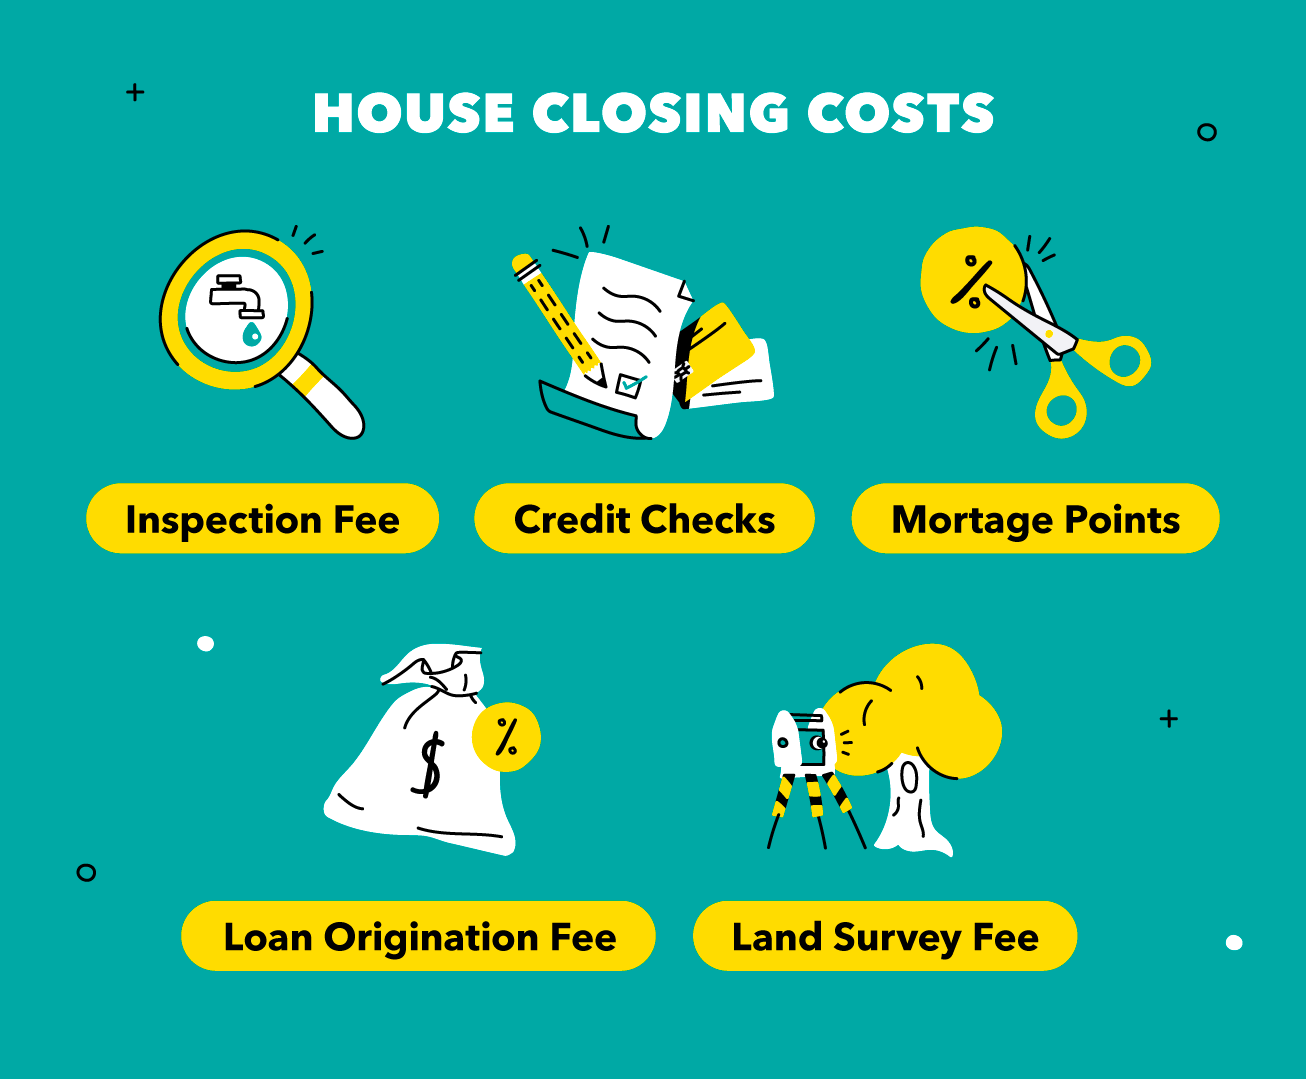 What Are Closing Costs on a House?